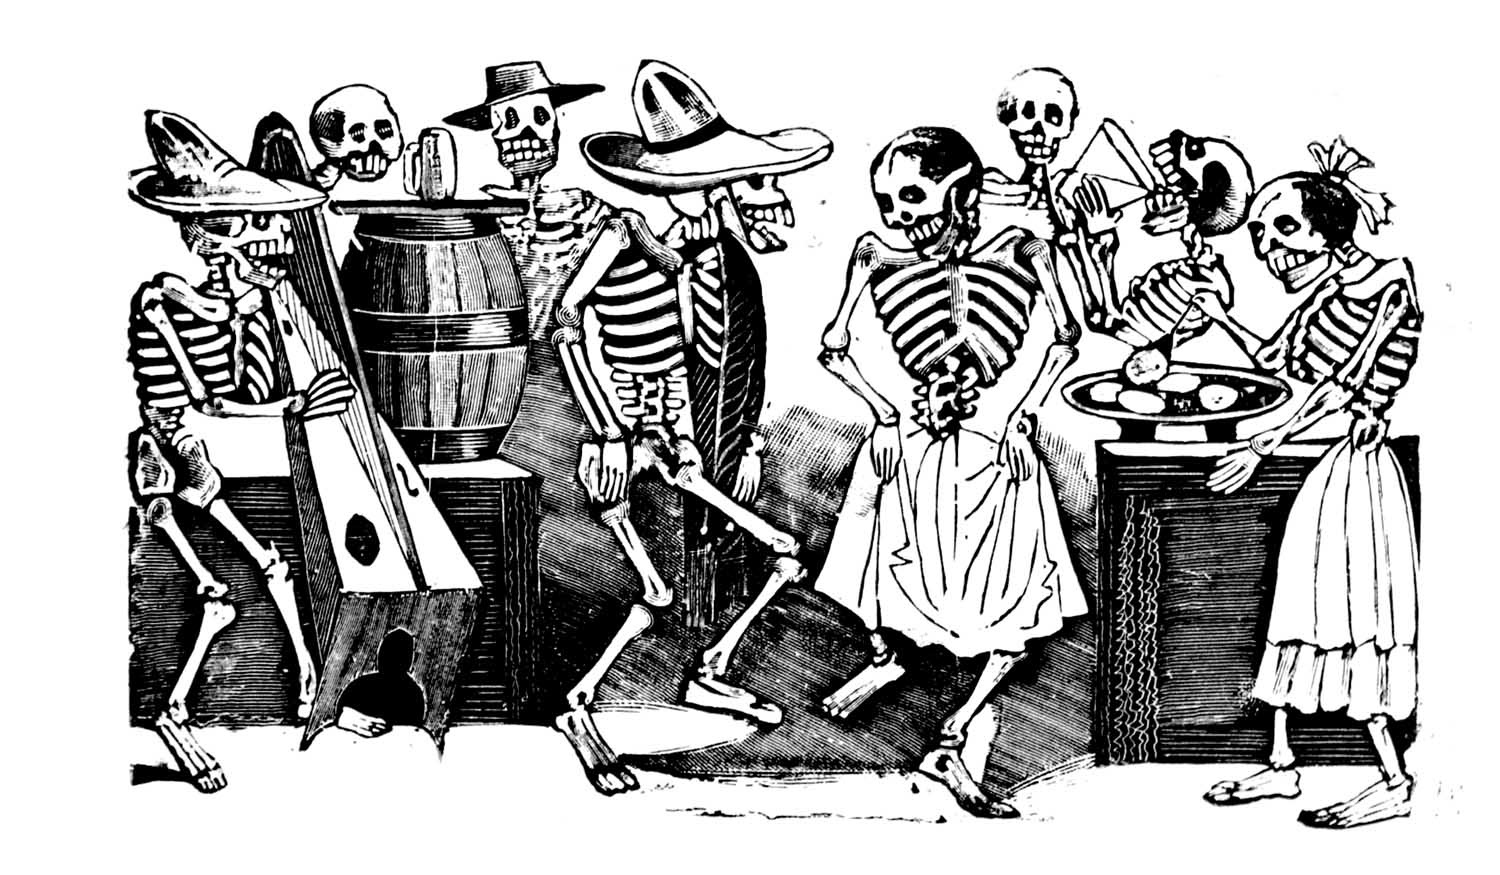 Jos guadalupe posada skulls skeletons and macabre mischief jos guadalupe posada skulls skeletons and macabre mischief illustration chronicles biocorpaavc Images